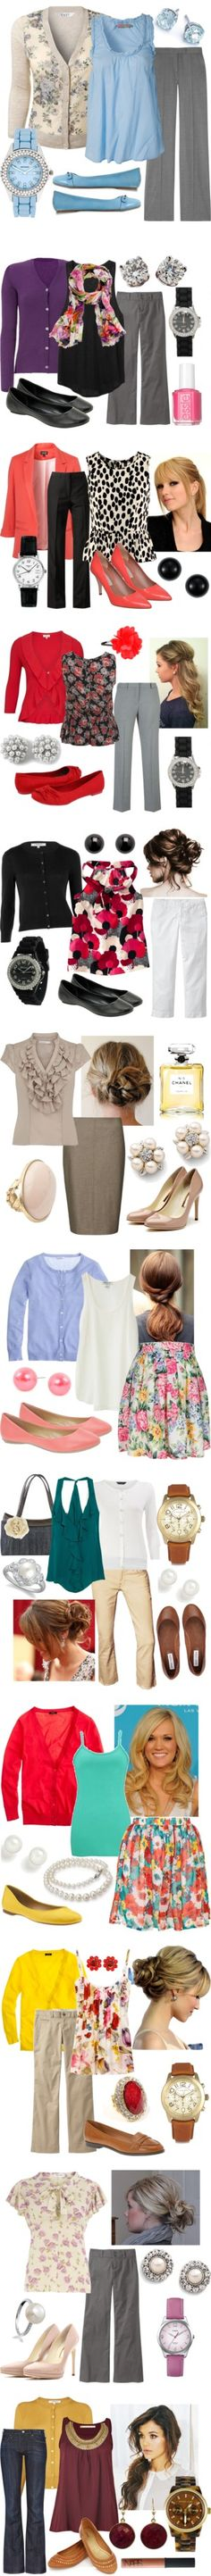 """Teaching Outfits"" by qtpiekelso on Polyvore"